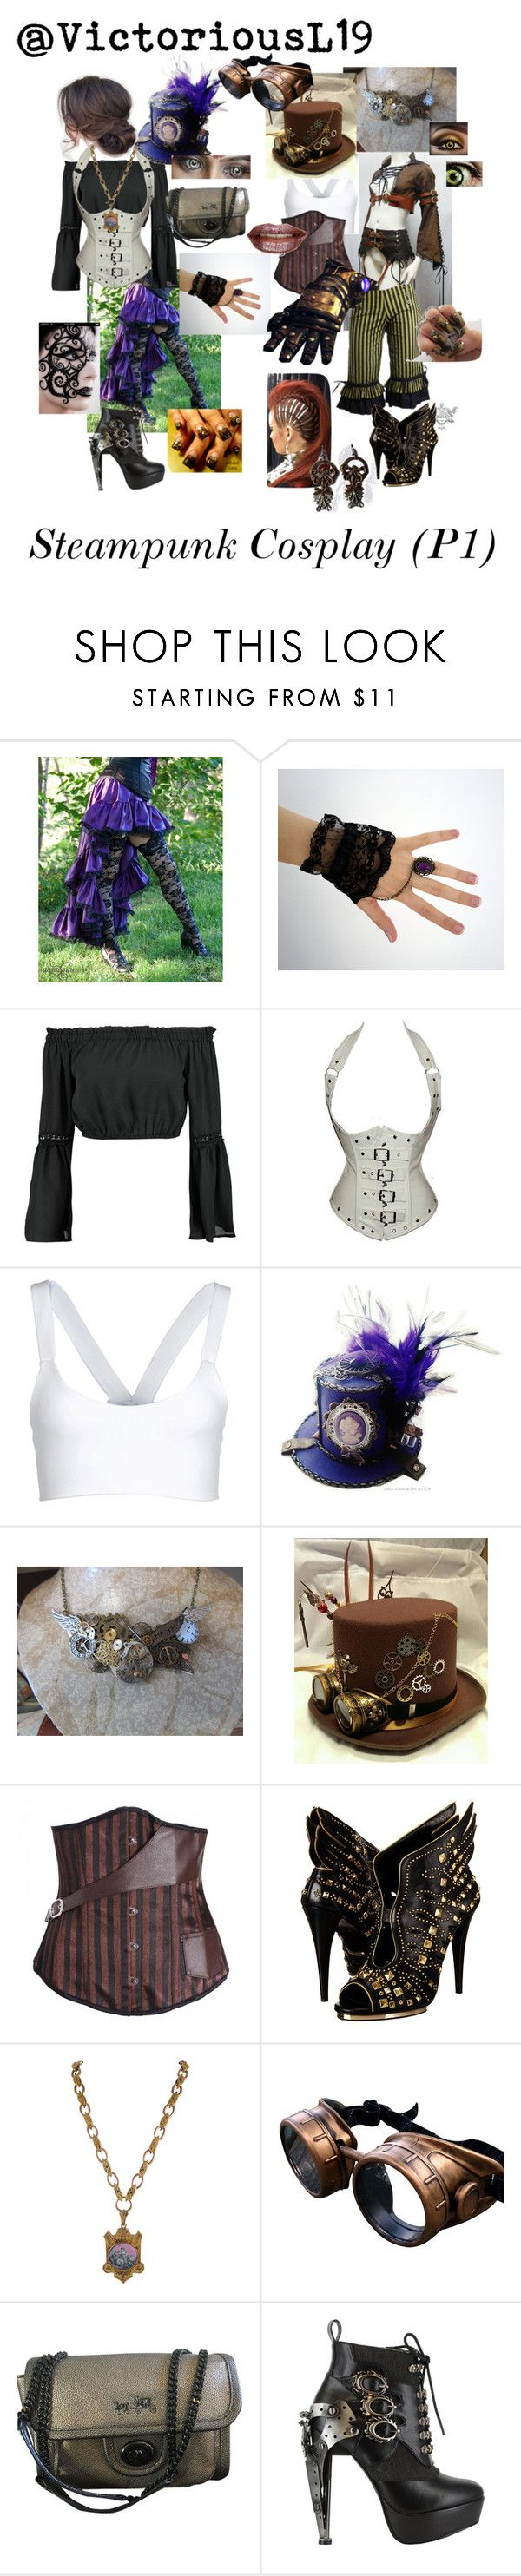 """""""Steampunk Cosplay (Black Butler OC) part one"""" by louella-brianna-beautiful-jackson ❤ liked on Polyvore featuring Boohoo, Port de Bras, Roberto Cavalli, Coach, HADES, OC, fanfiction, cosplay, steampunk and BlackButler"""